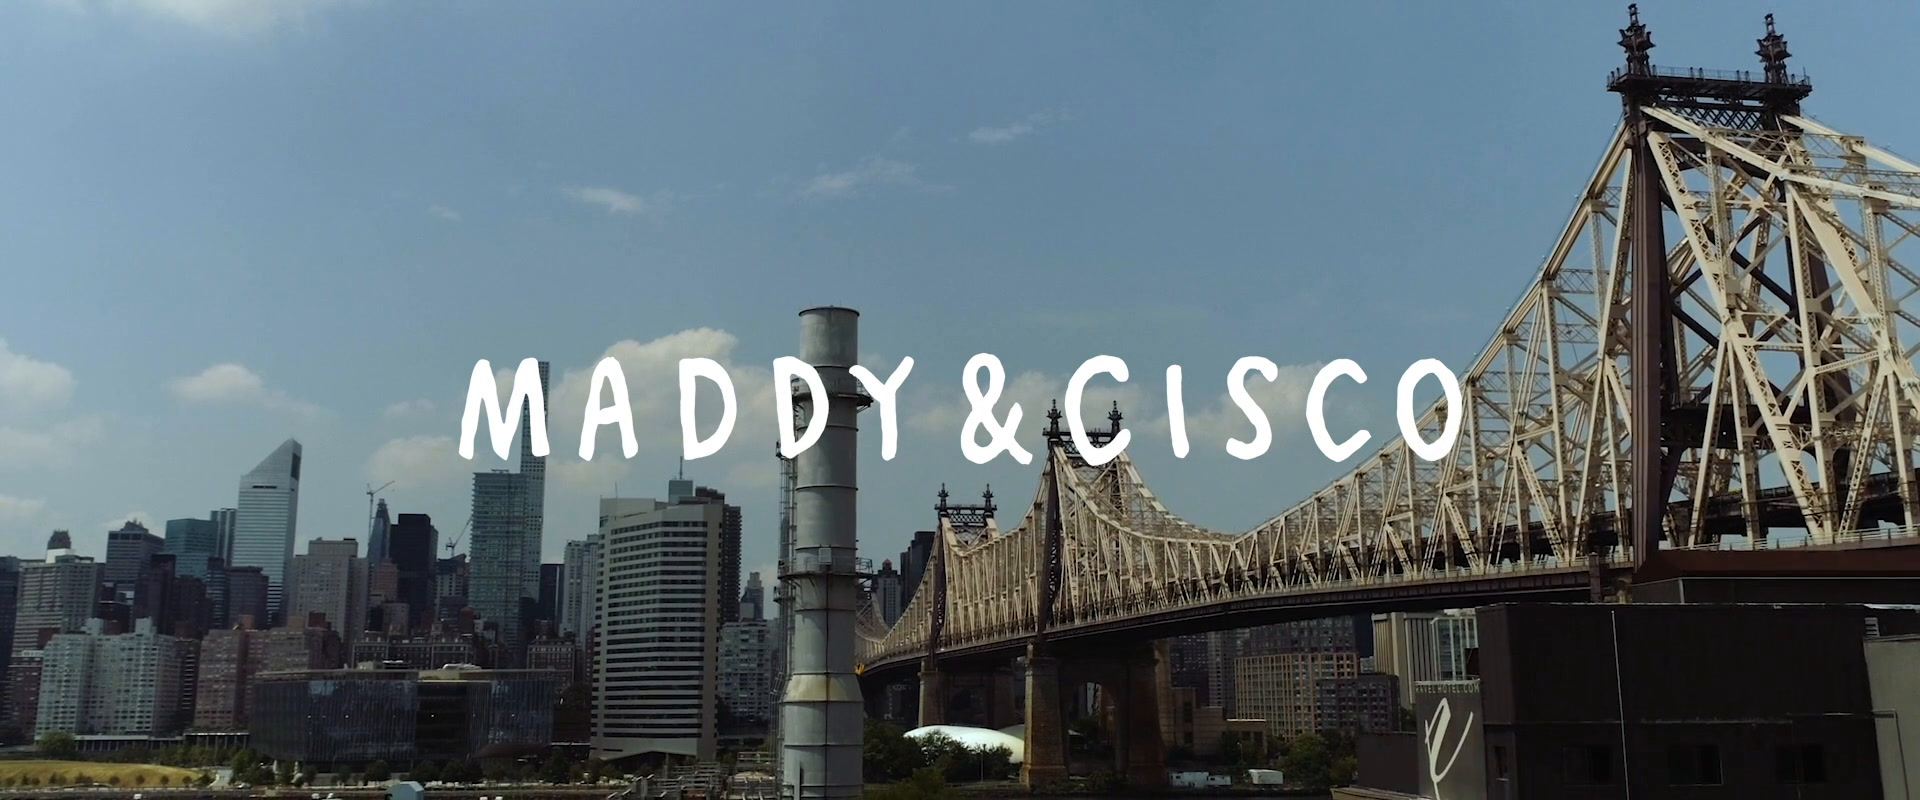 Cisco + Maddy | New York, New York | The Foundry